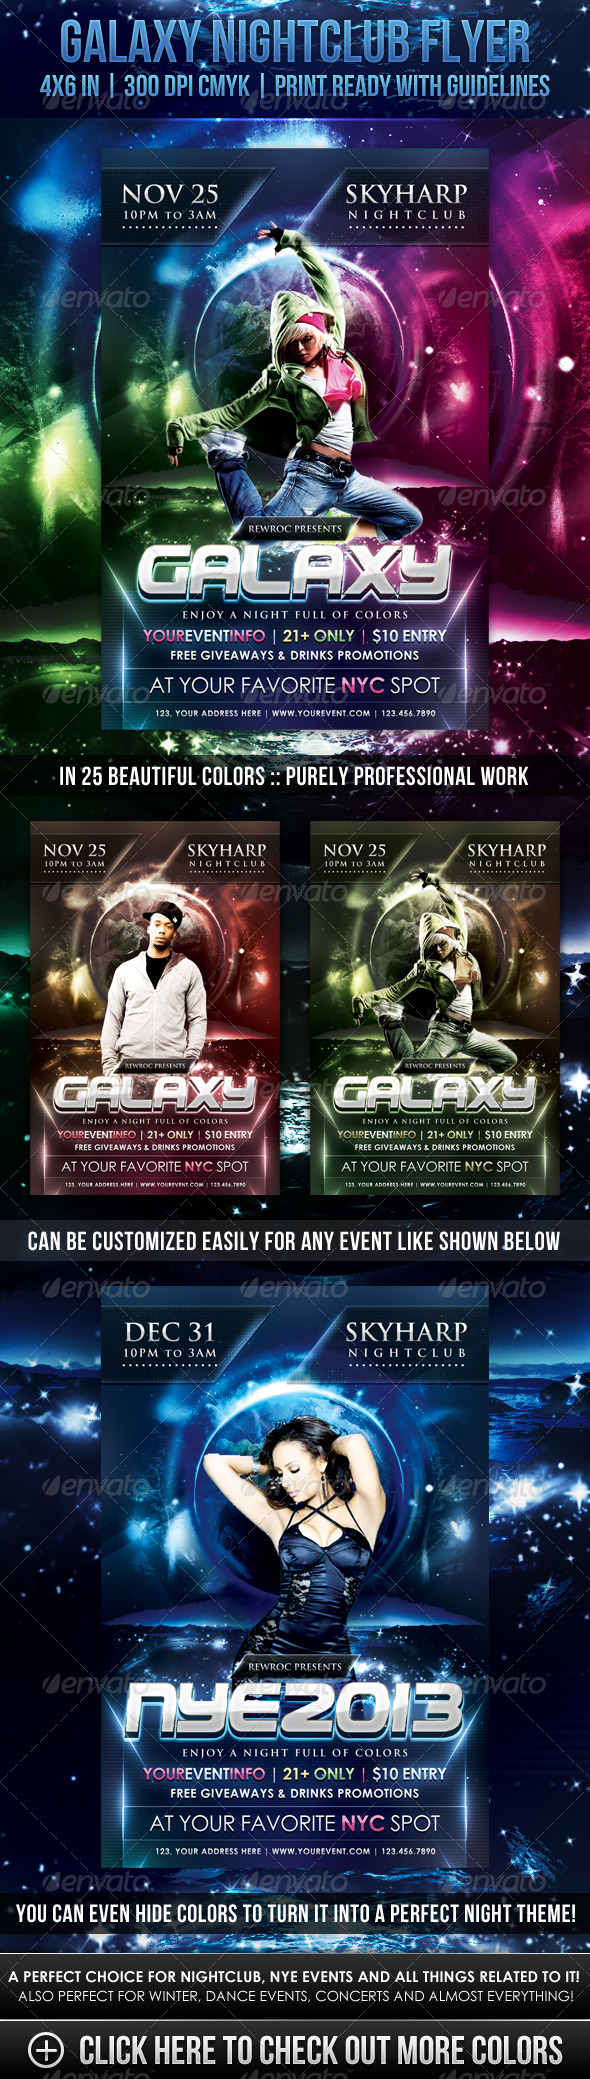 Galaxy Nightclub Flyer - Clubs & Parties Events